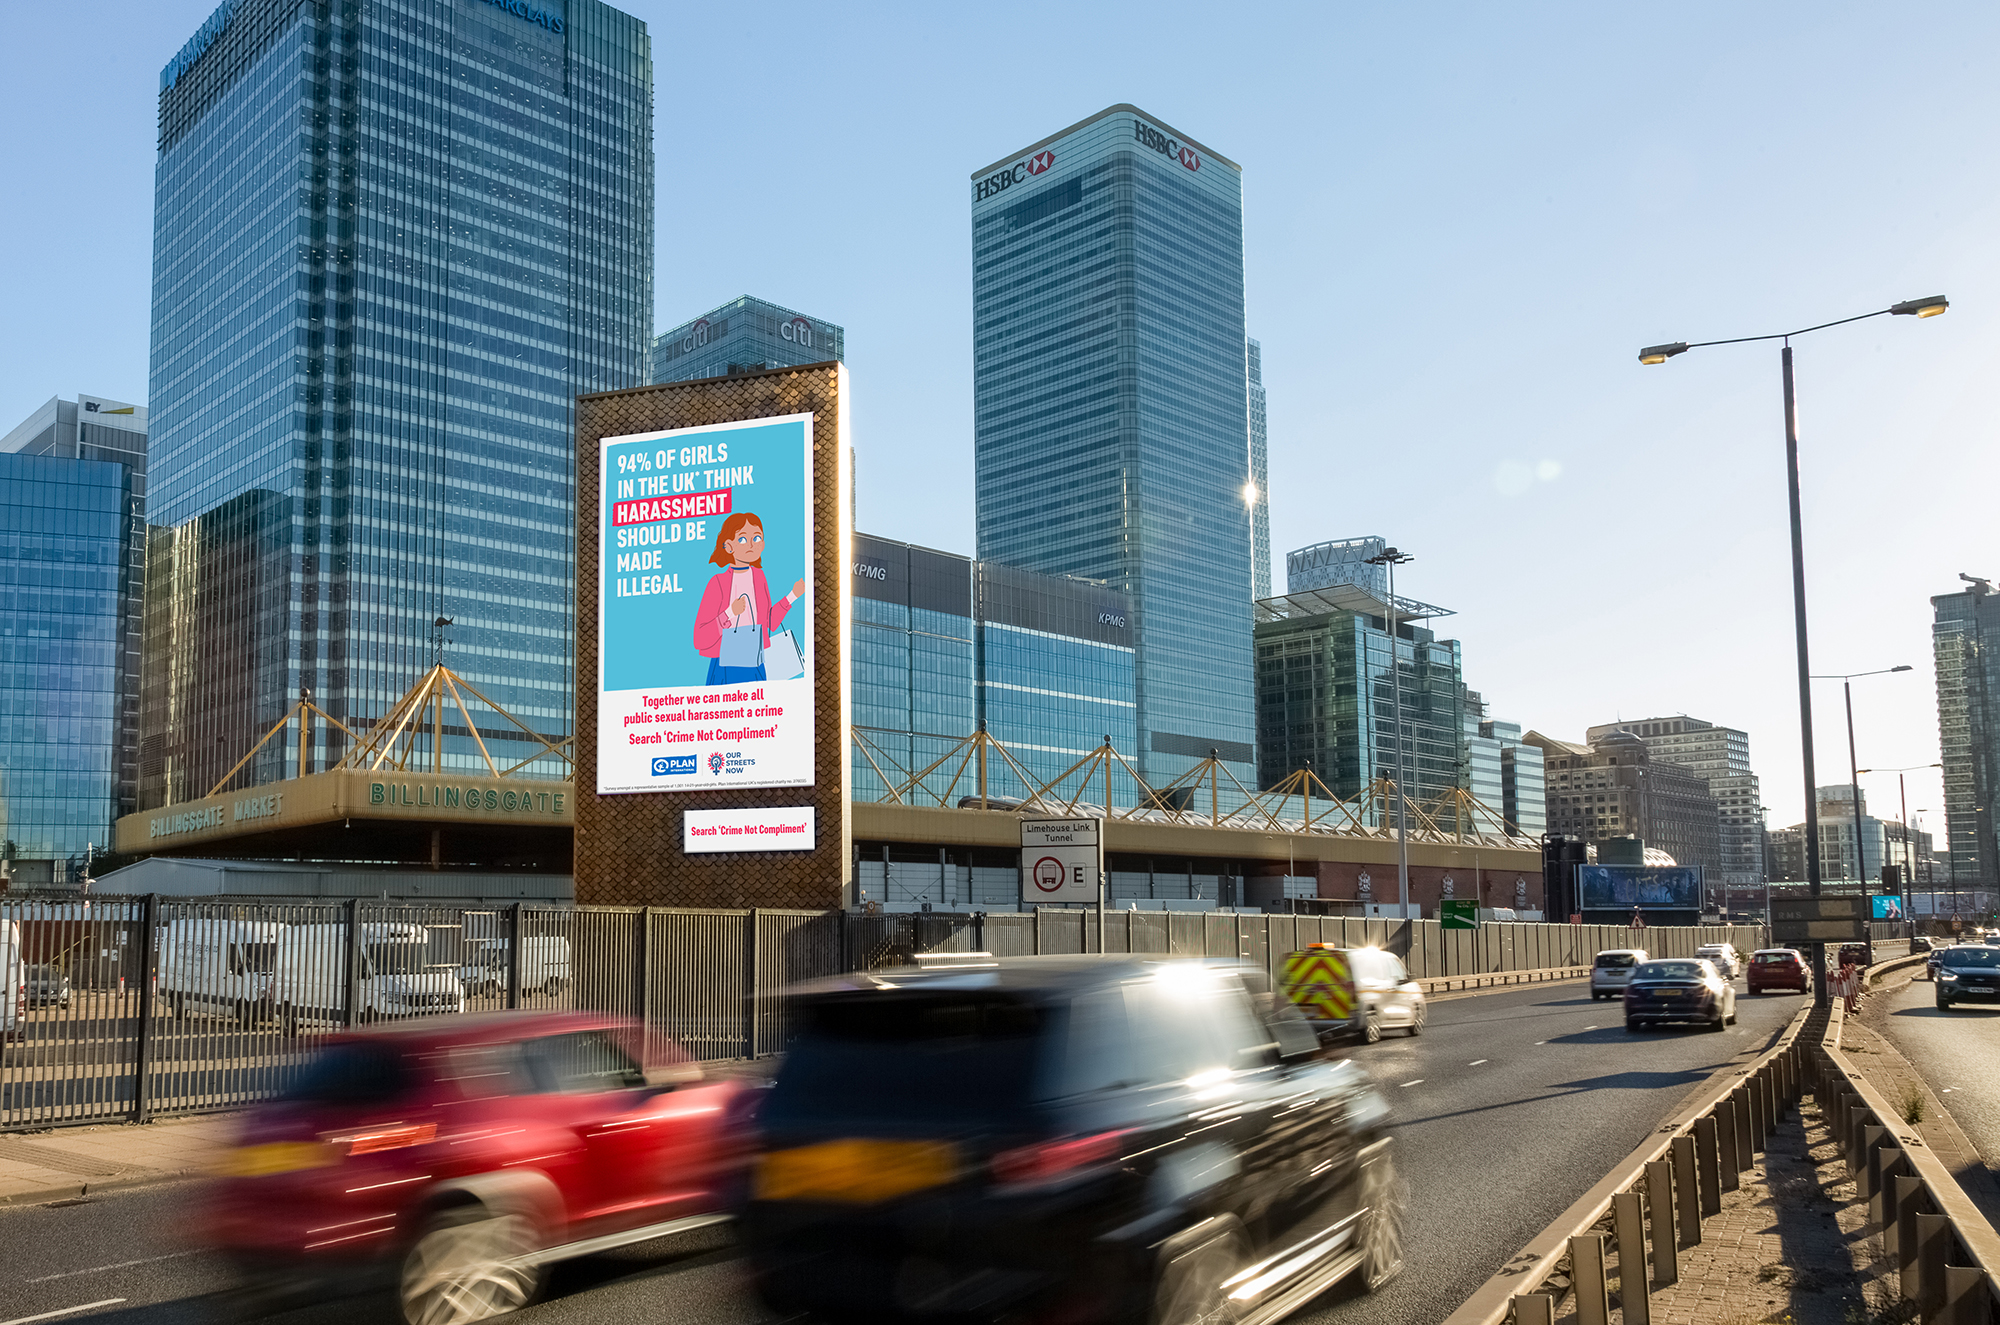 Clear Channel: campaign comprises outdoor activity